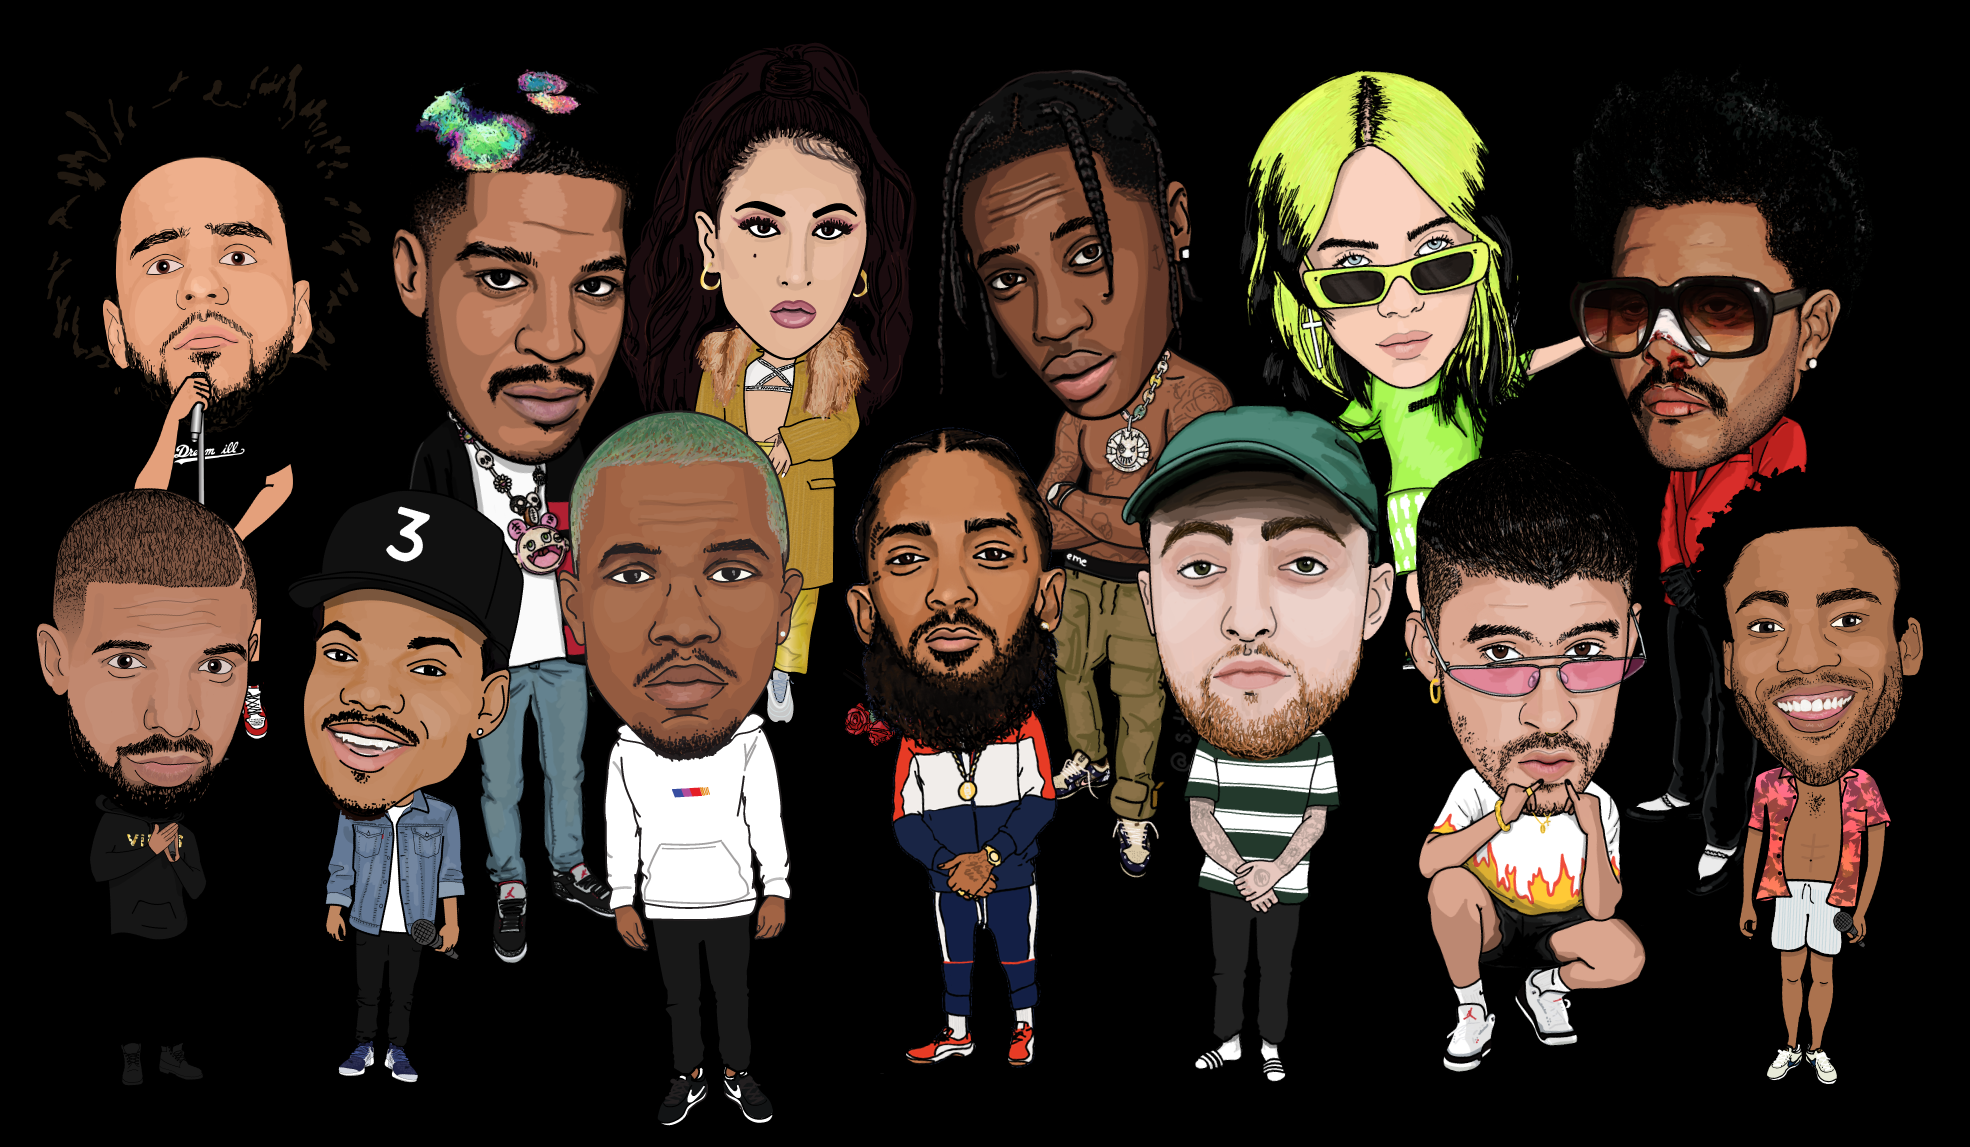 s.thetix illustrations, lil giants, featuring Billie Eilish, Frank Ocean, The Weeknd, Kid Cudi, Travis Scott, and Bad Bunny Cover